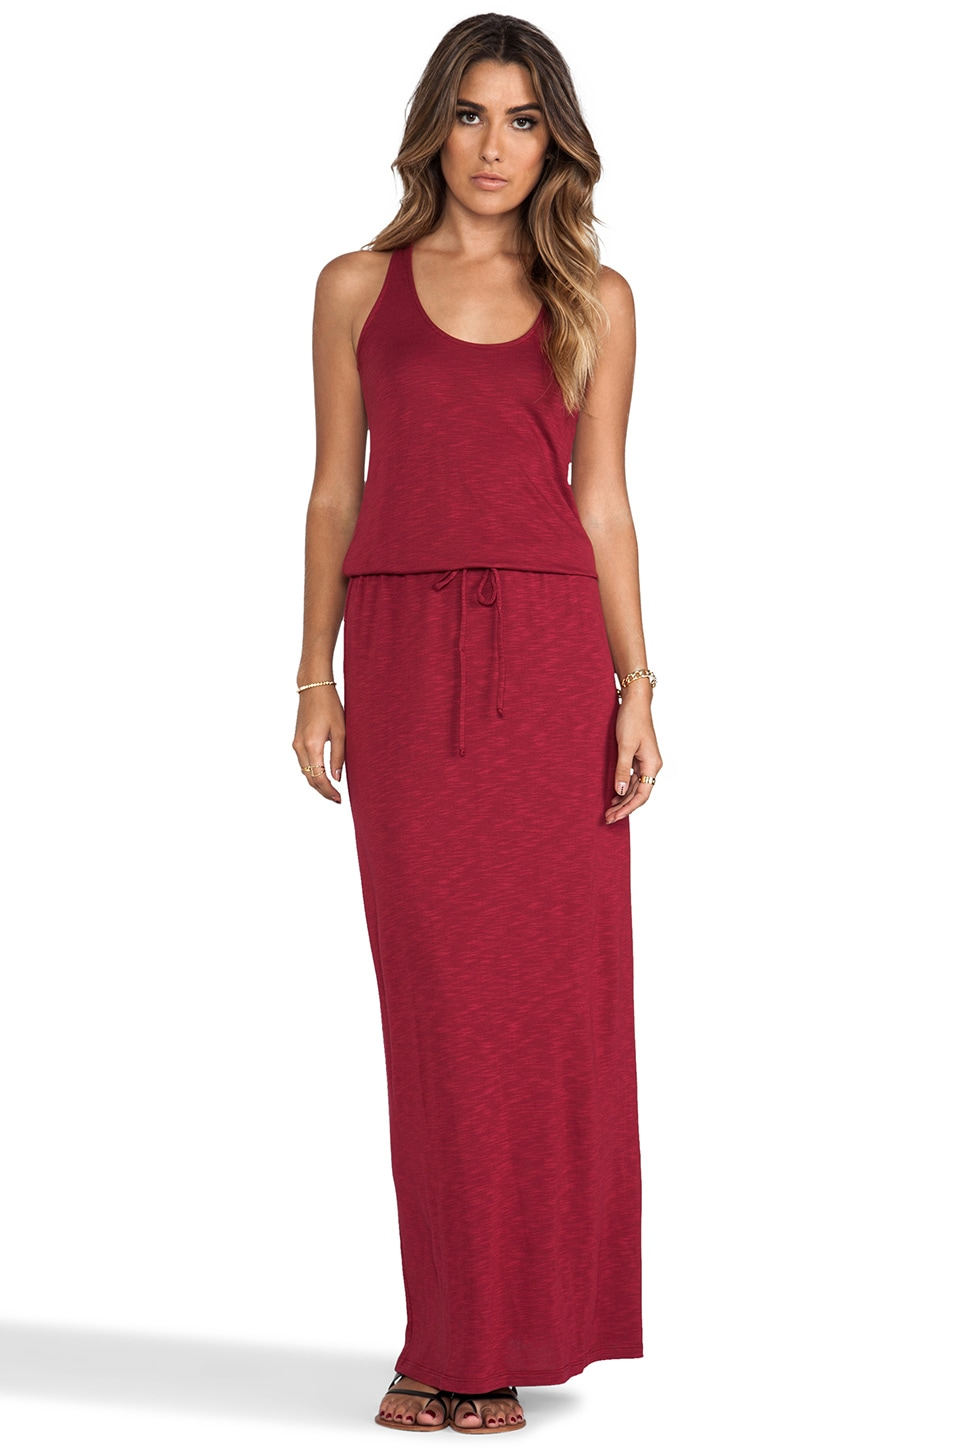 Lanston Racerback Maxi Dress in Port